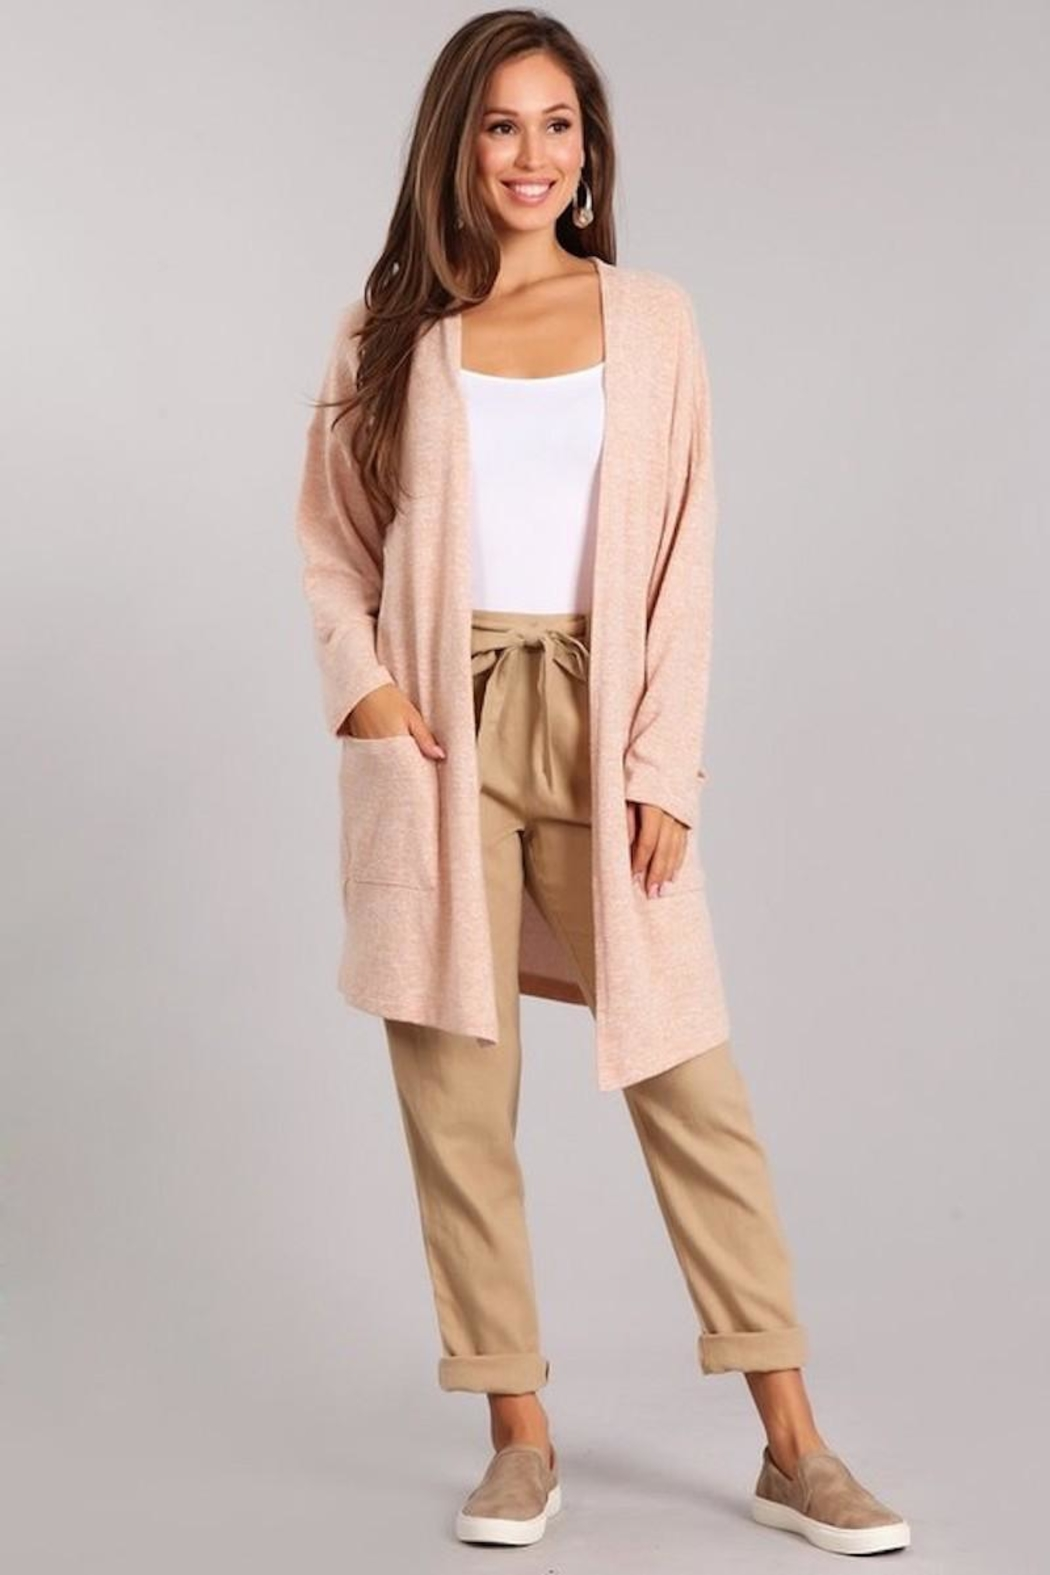 Chris & Carol Soft Peach Pocket Cardigan - Main Image